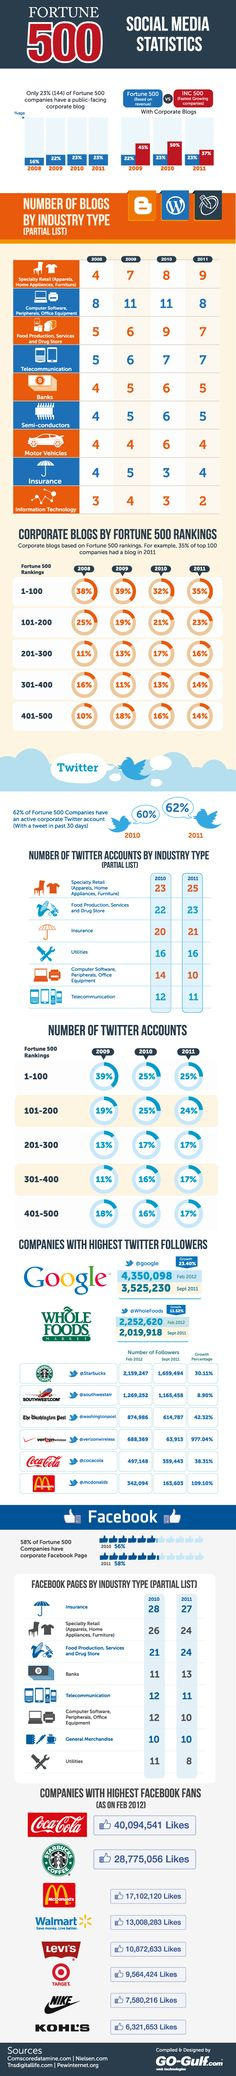 What is the level of #socialmedia uptake in Fortune 500